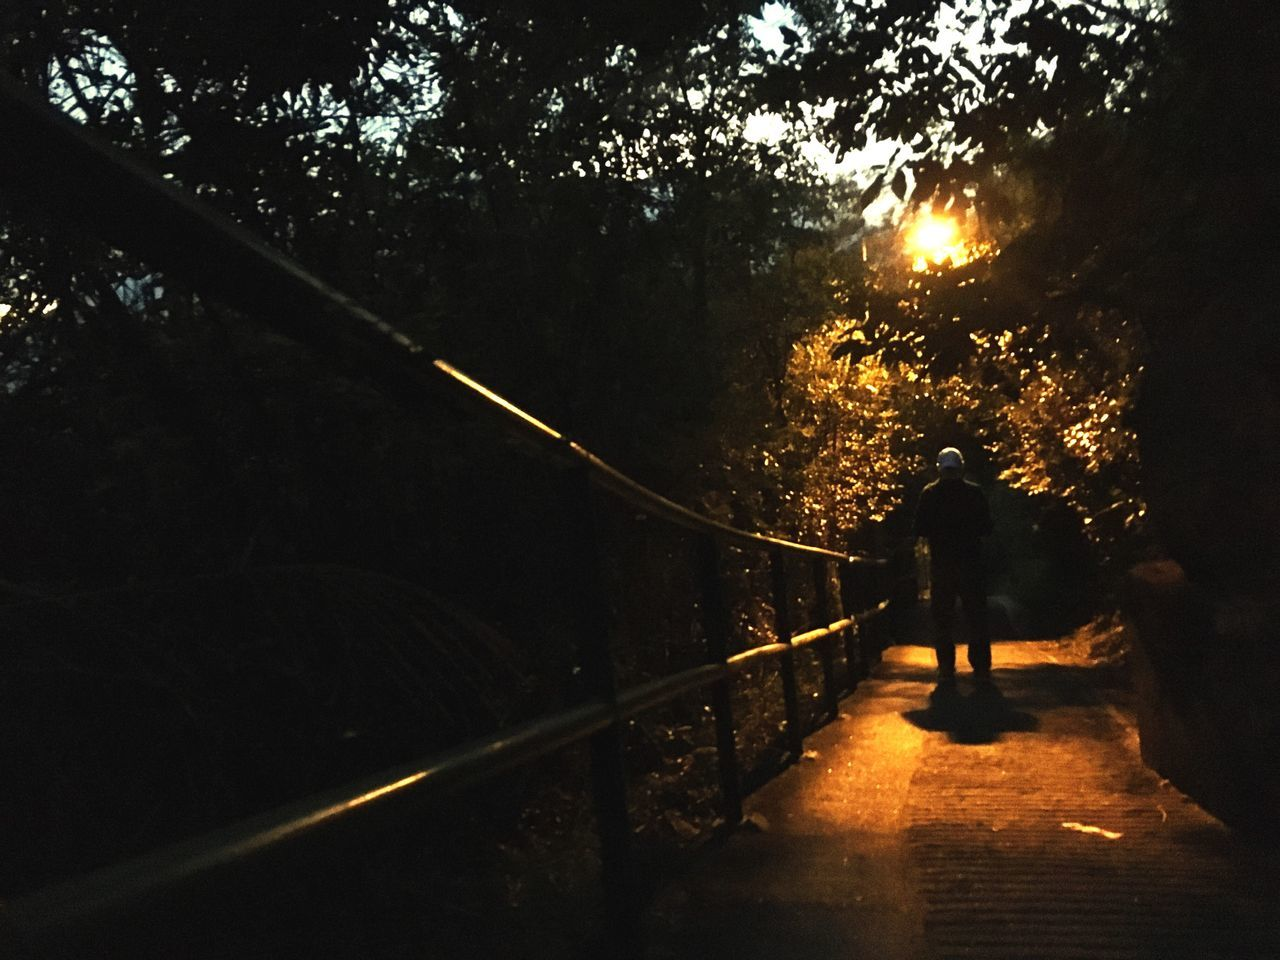 real people, rear view, railing, full length, walking, the way forward, tree, one person, men, silhouette, outdoors, nature, standing, lifestyles, footbridge, night, adult, people